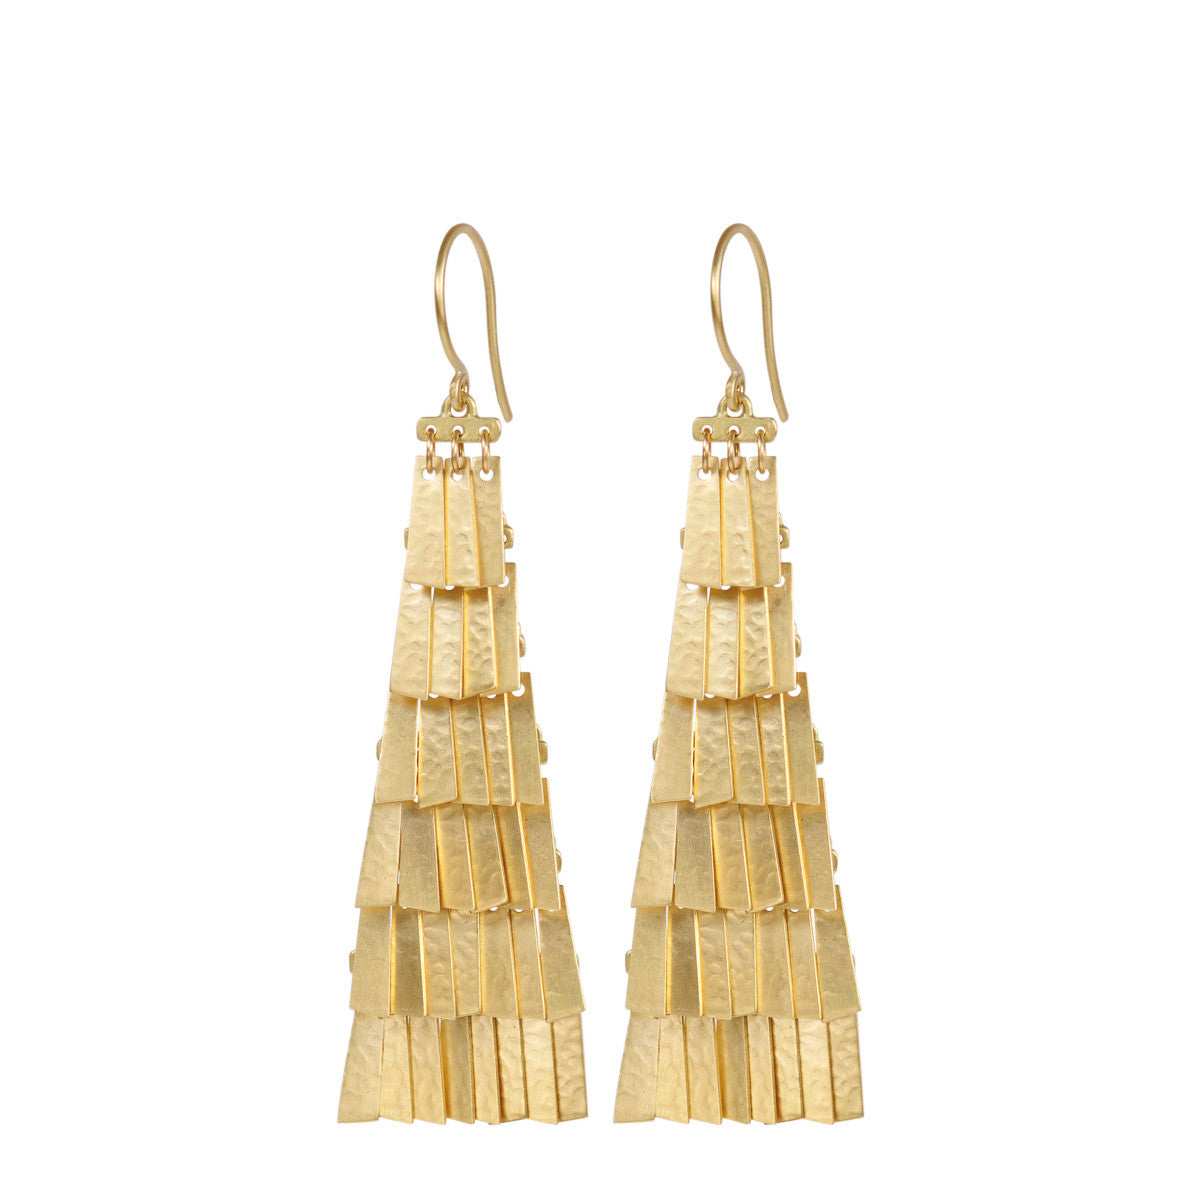 18K Gold Long Curtain Earrings